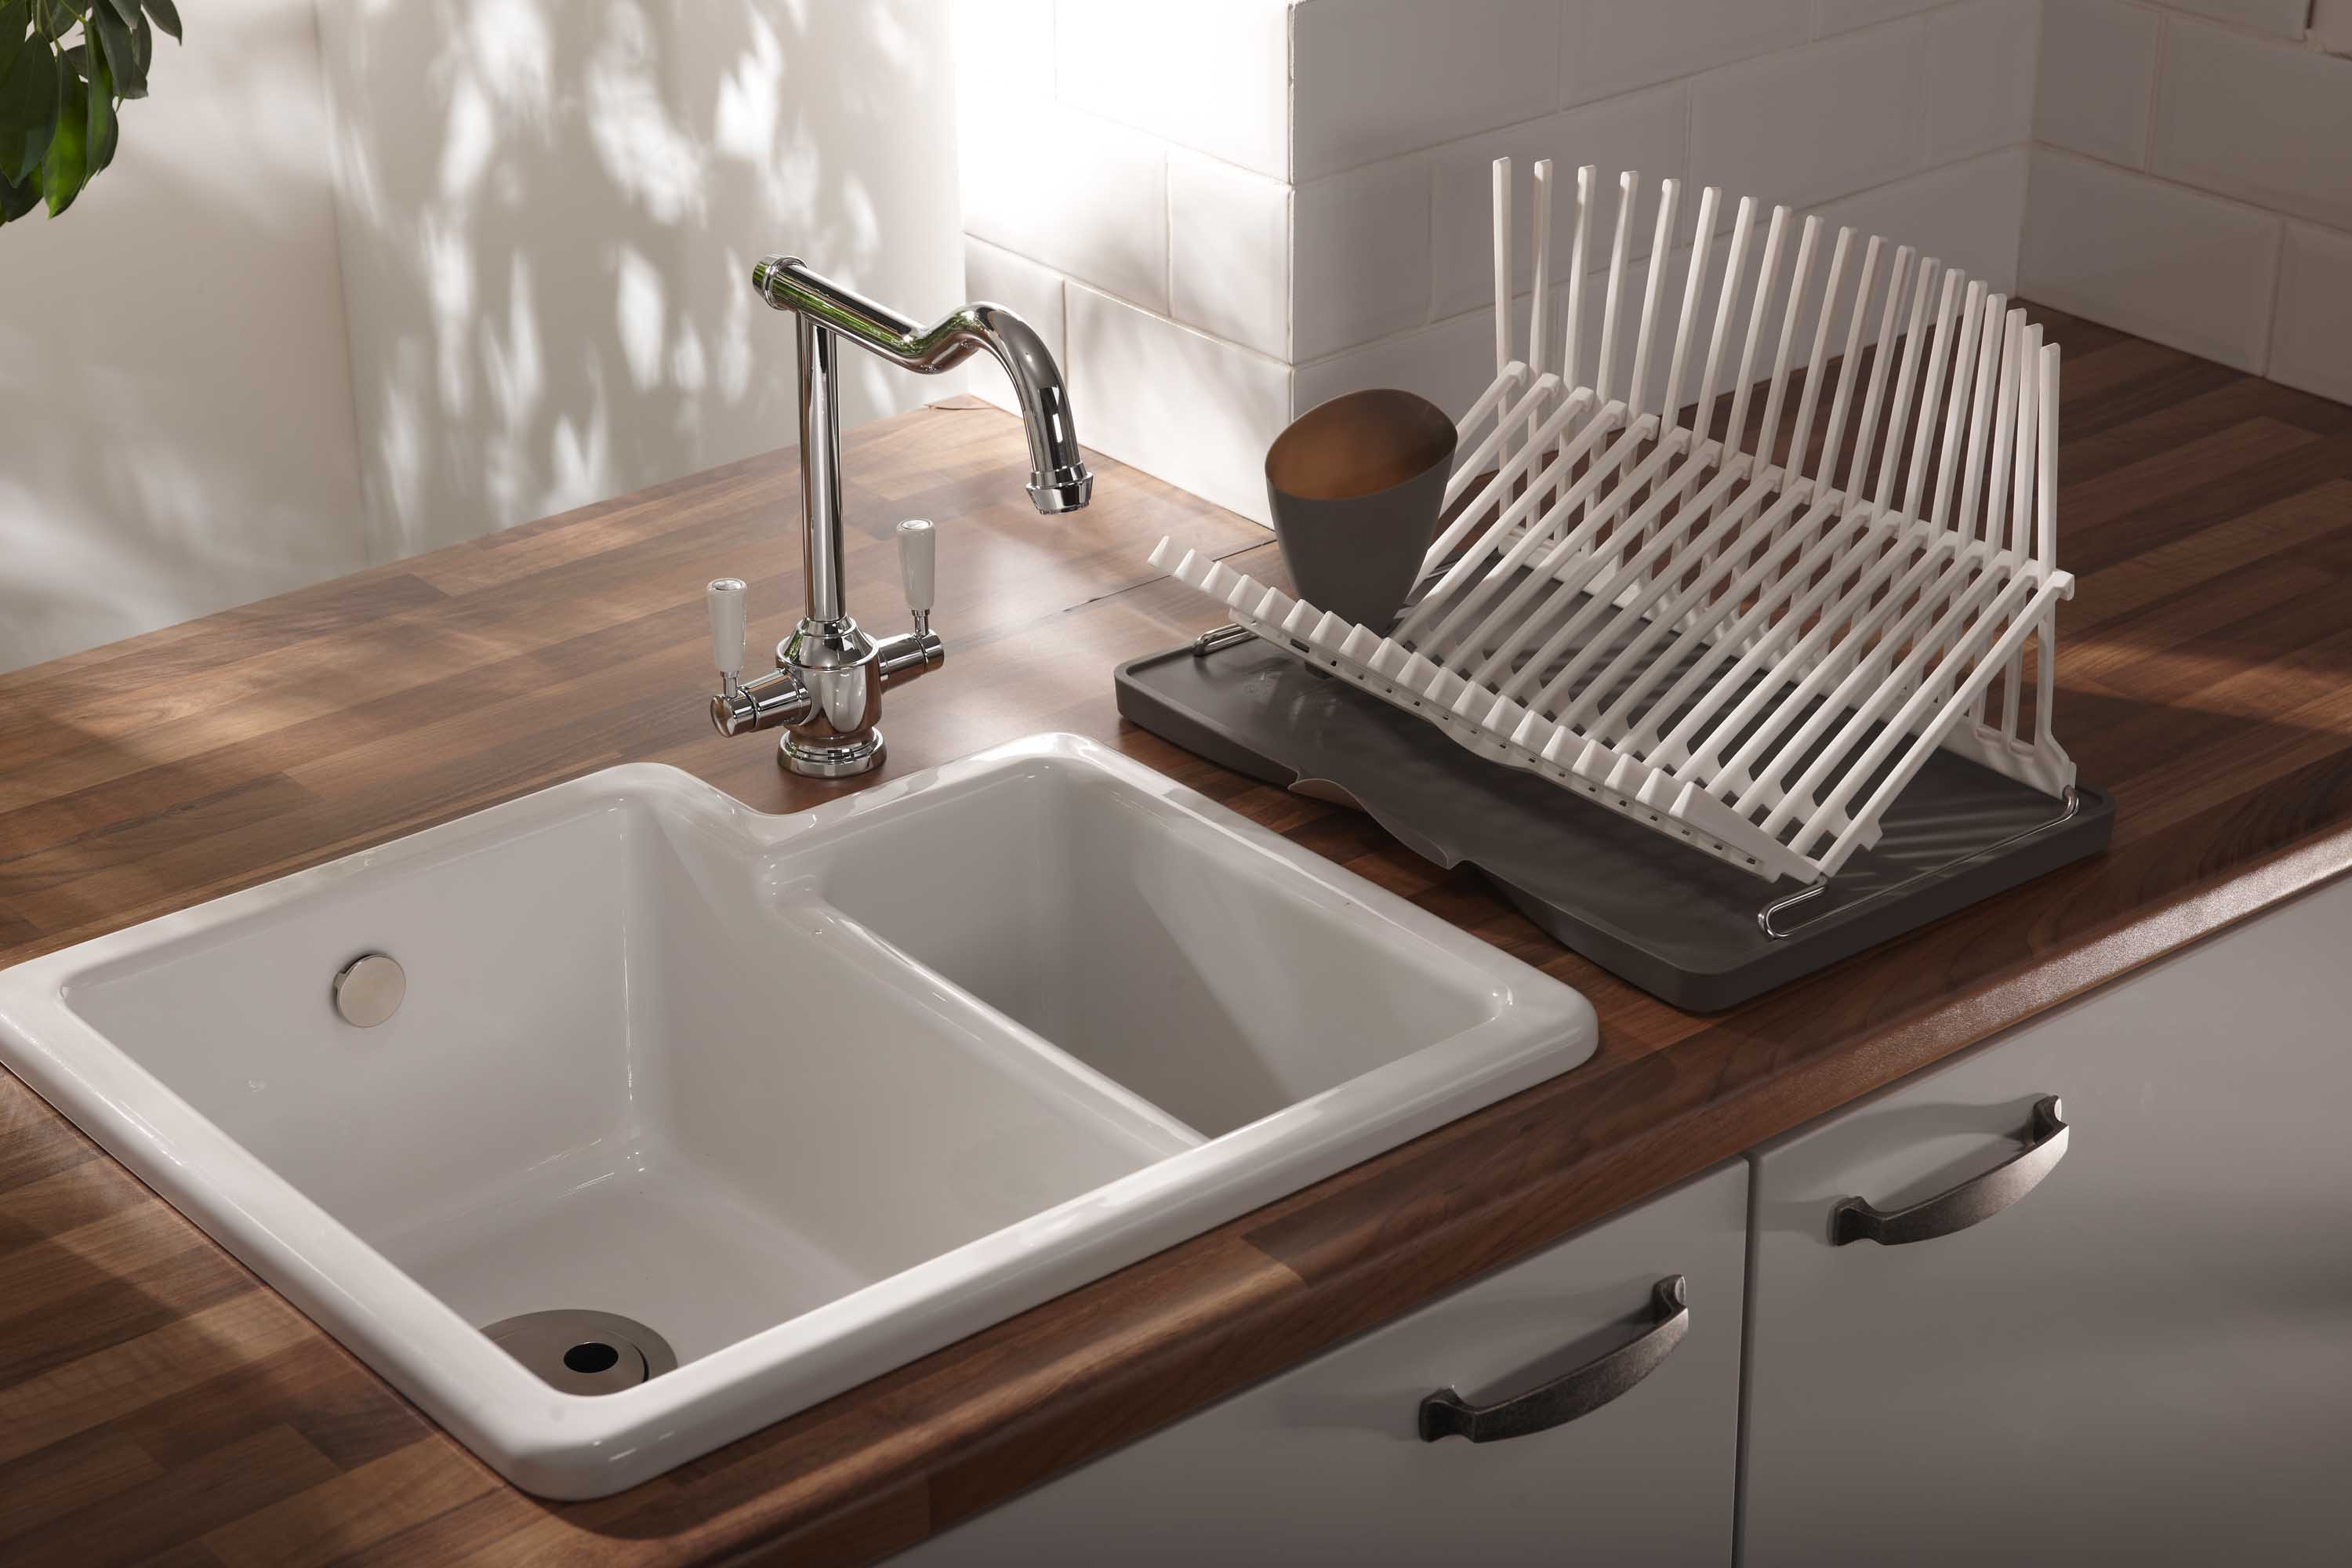 Waschbecken Modernes Design 21 Ceramic Sink Design Ideas For Kitchen And Bathroom